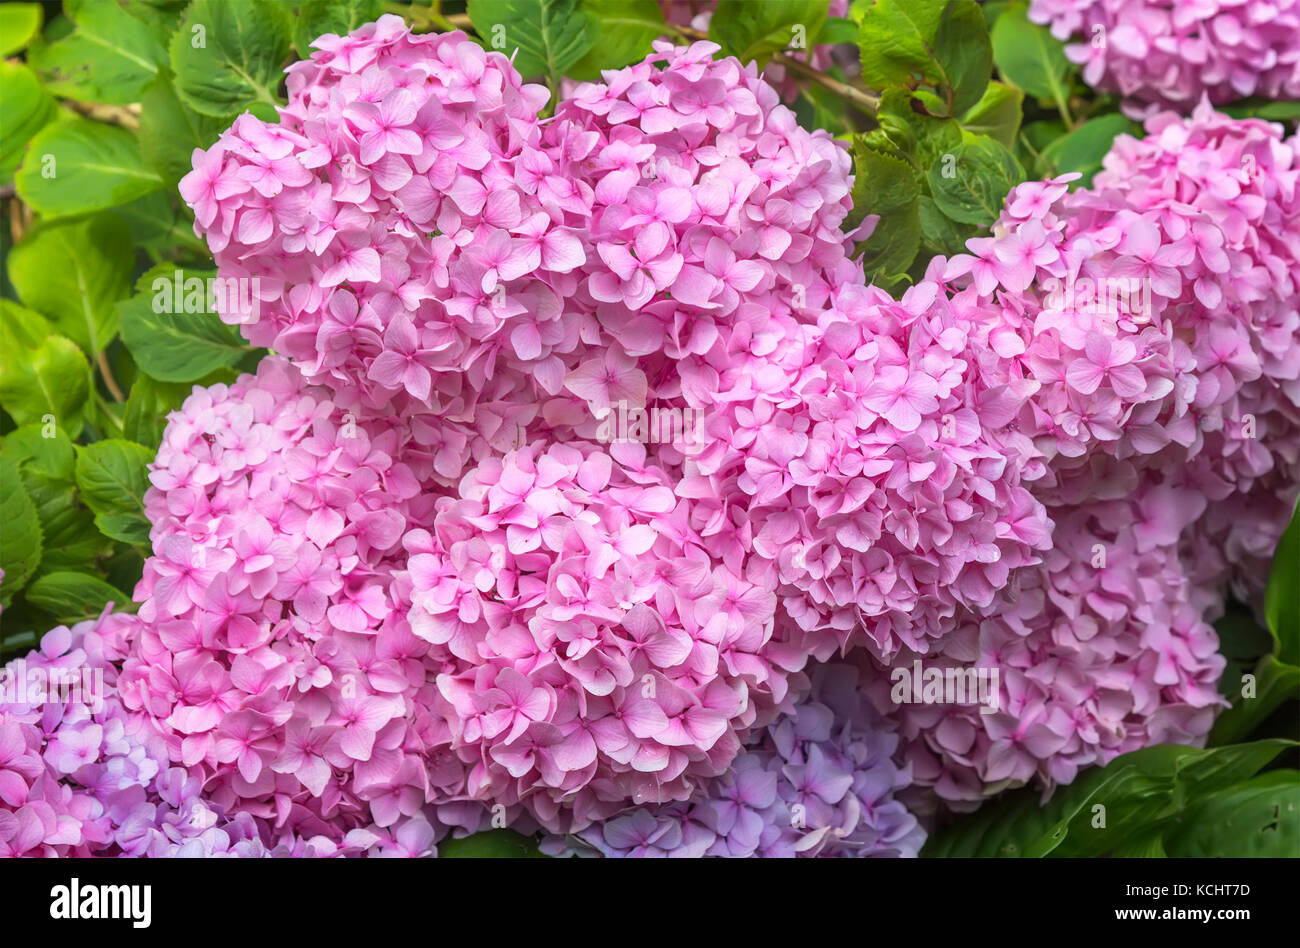 hortensia hydrangea purple blooming flower stock photos. Black Bedroom Furniture Sets. Home Design Ideas